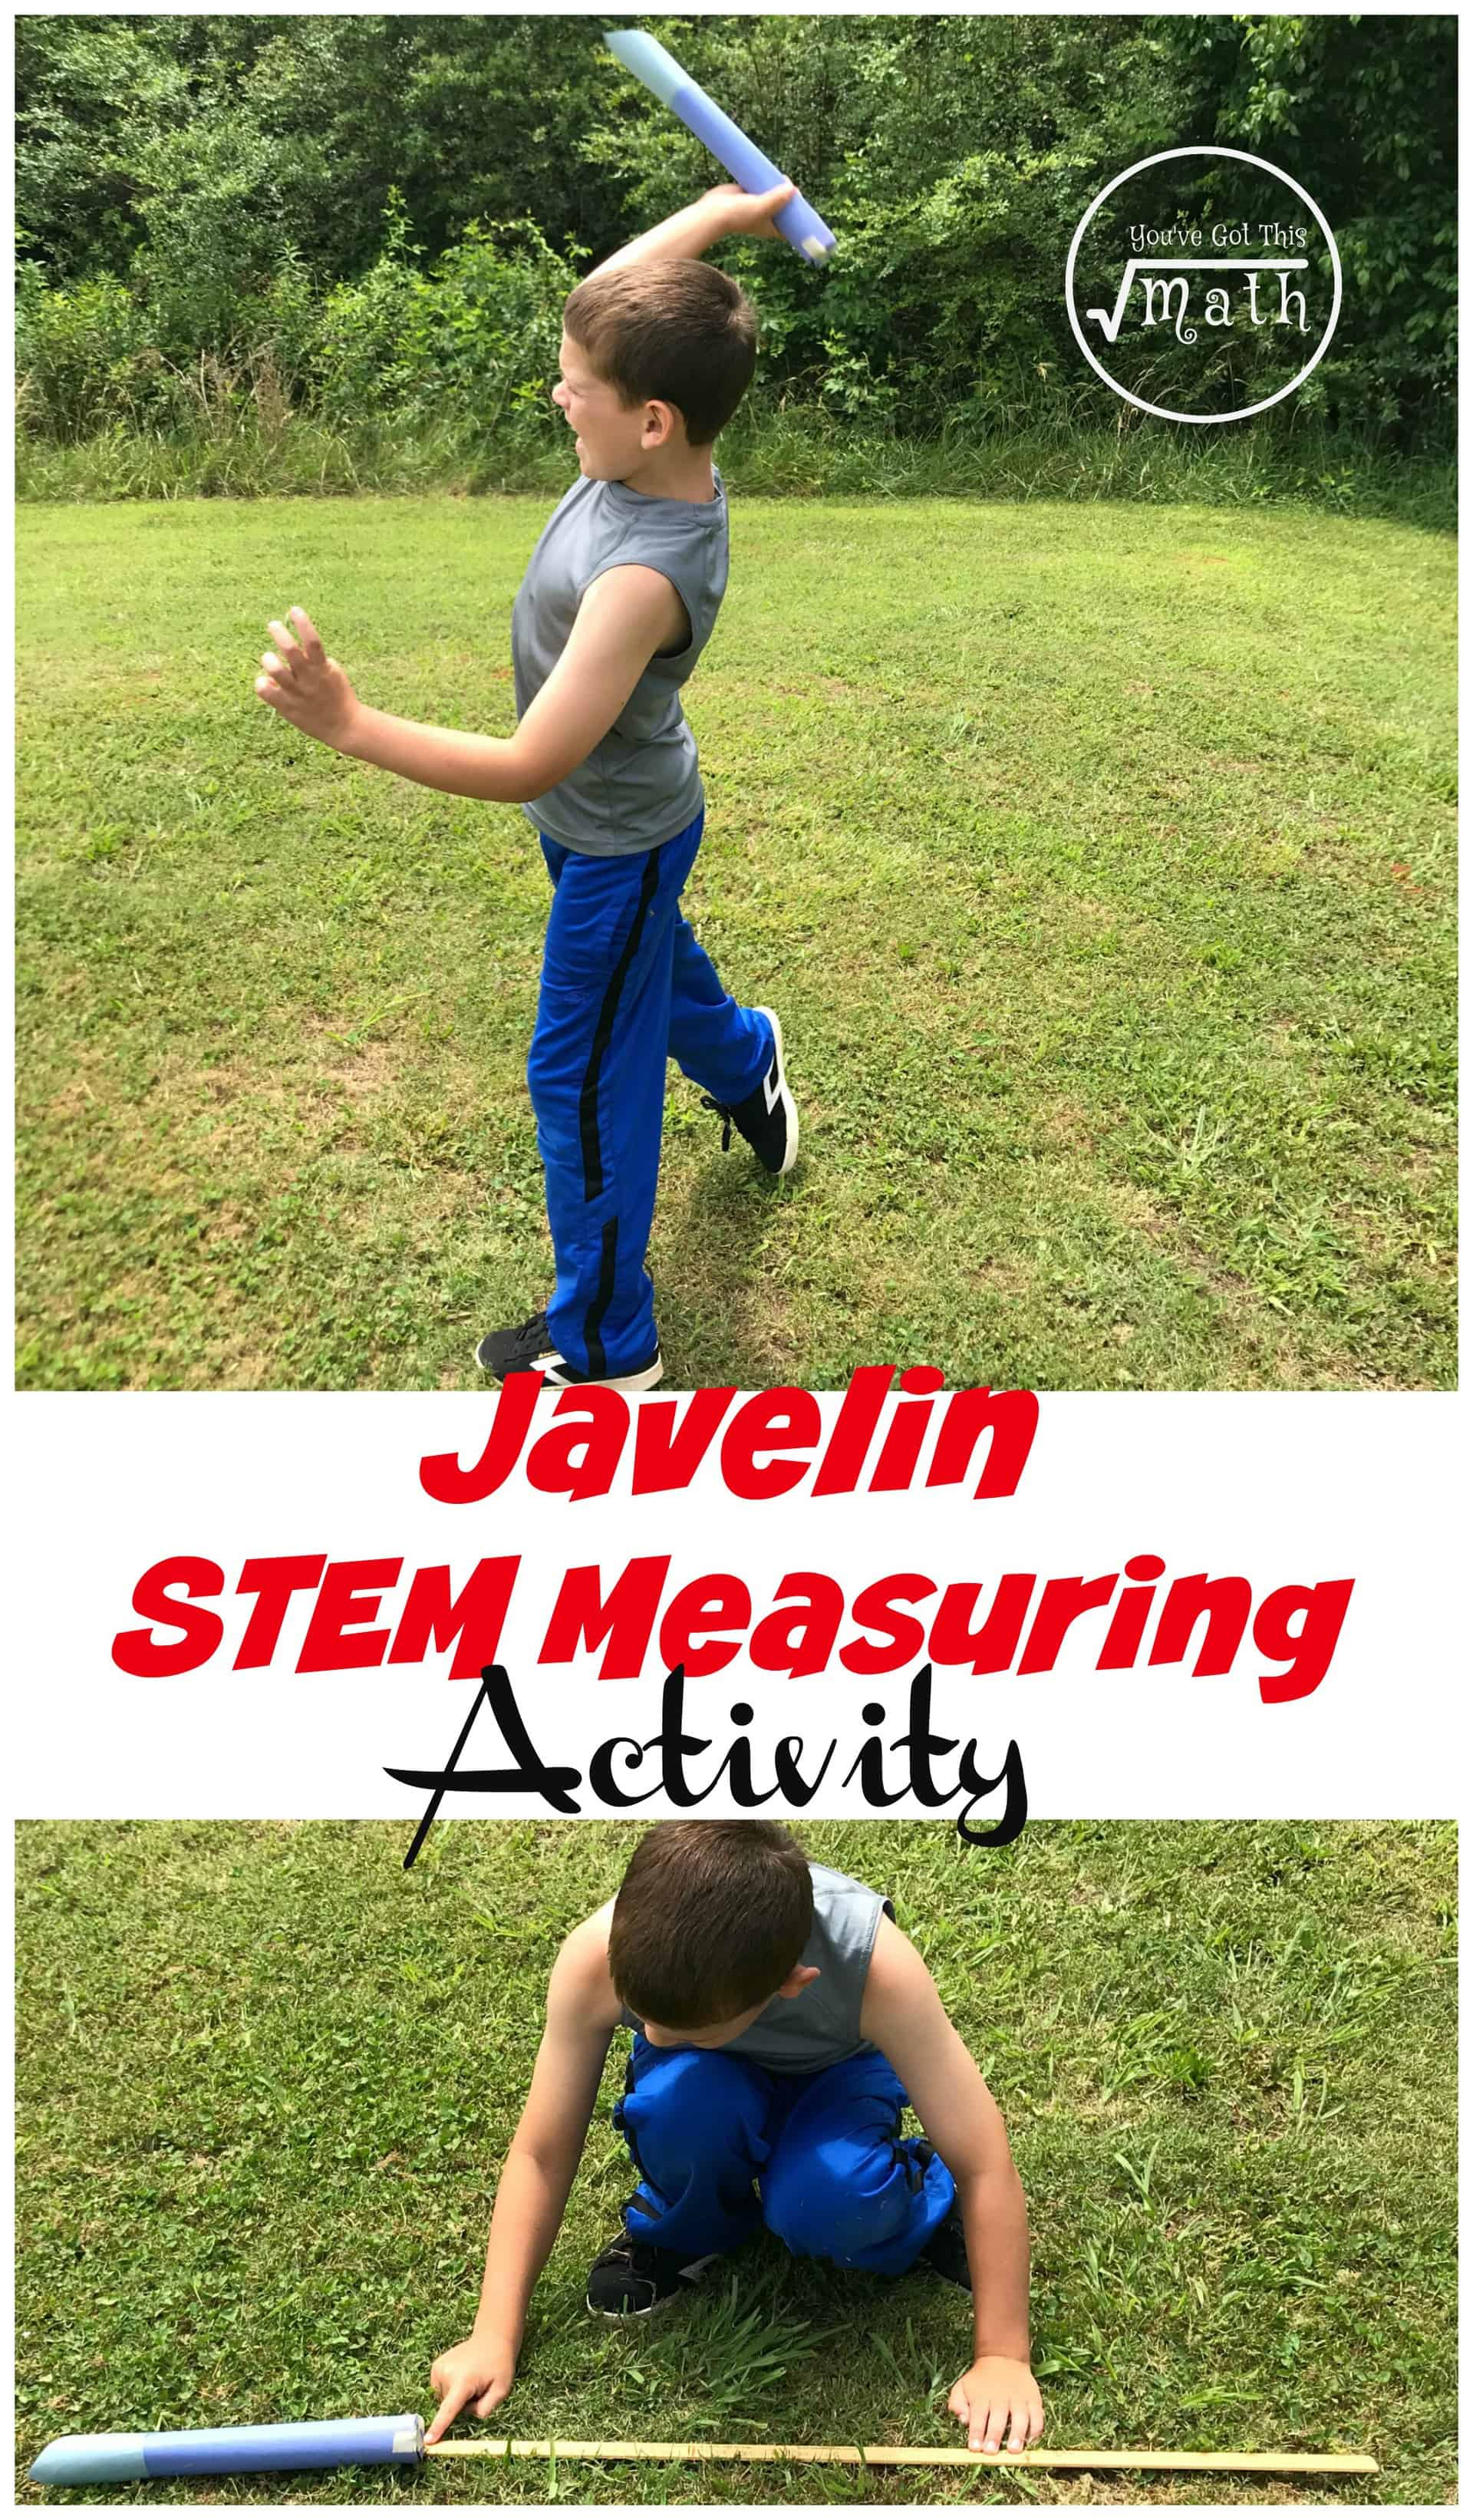 This STEM measurement activity gets children designing their own Javelin and then measuring how far they can throw it.